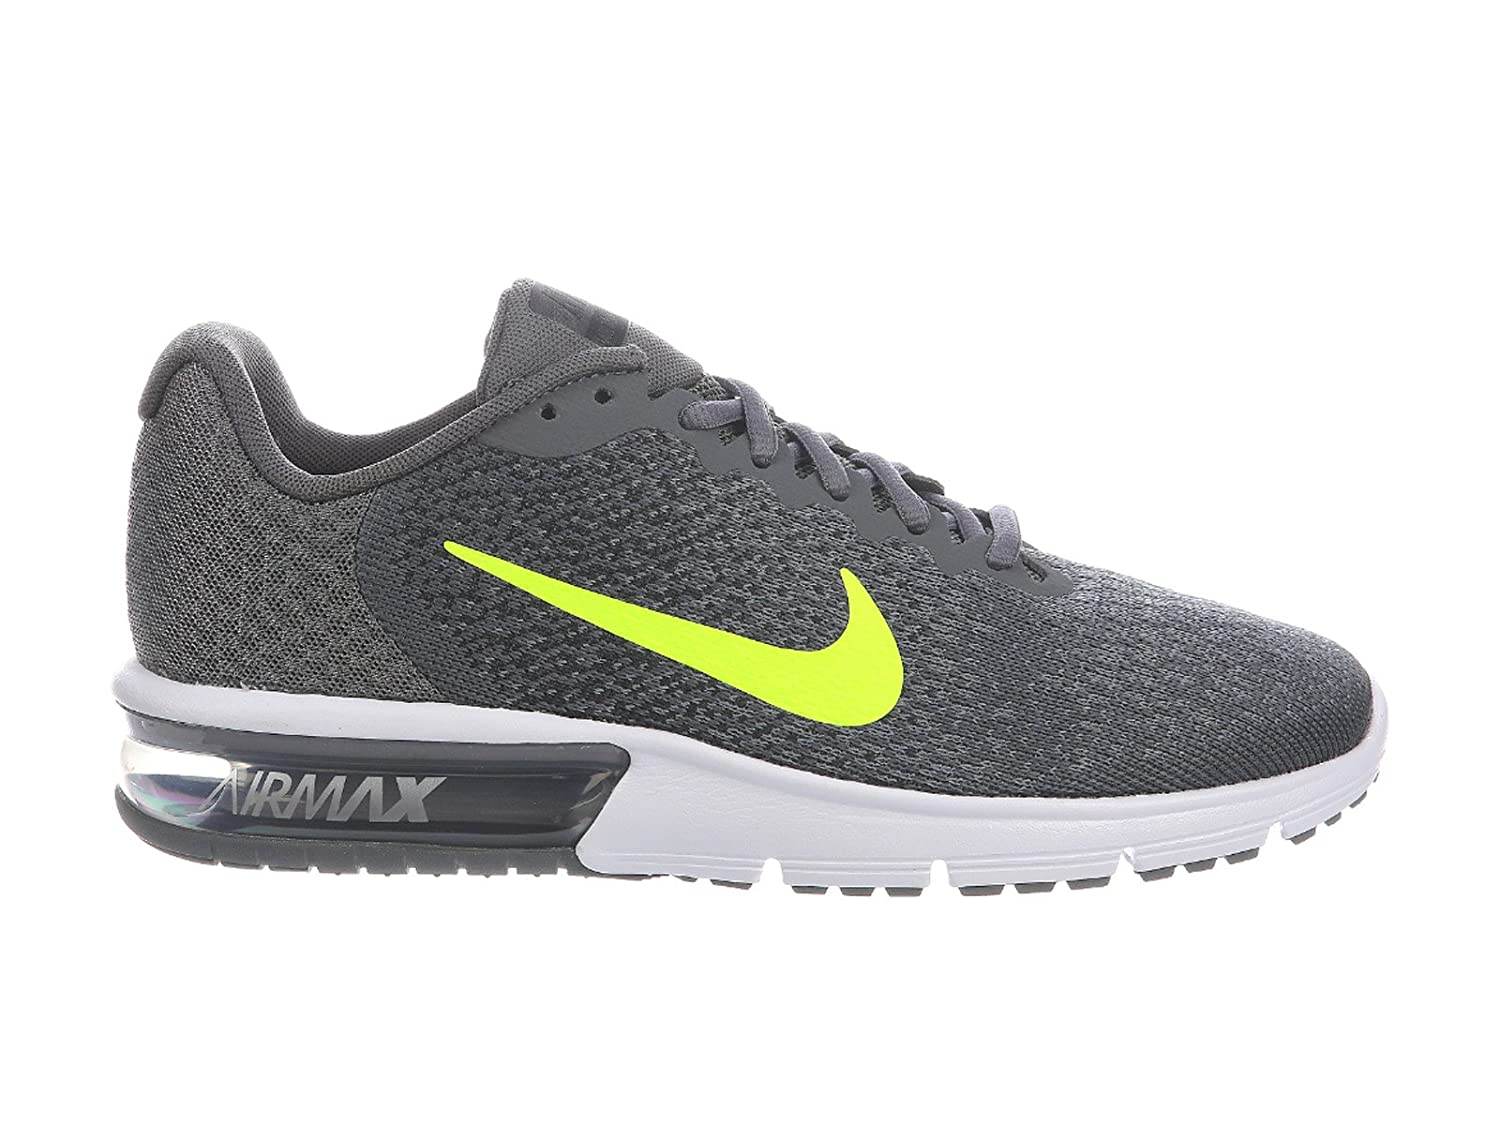 NIKE Men's Air Max Sequent 2 Running Shoe B00JCF9EO2 14 D(M) US|Dark Grey/Volt/Anthracite/Cool Grey/White